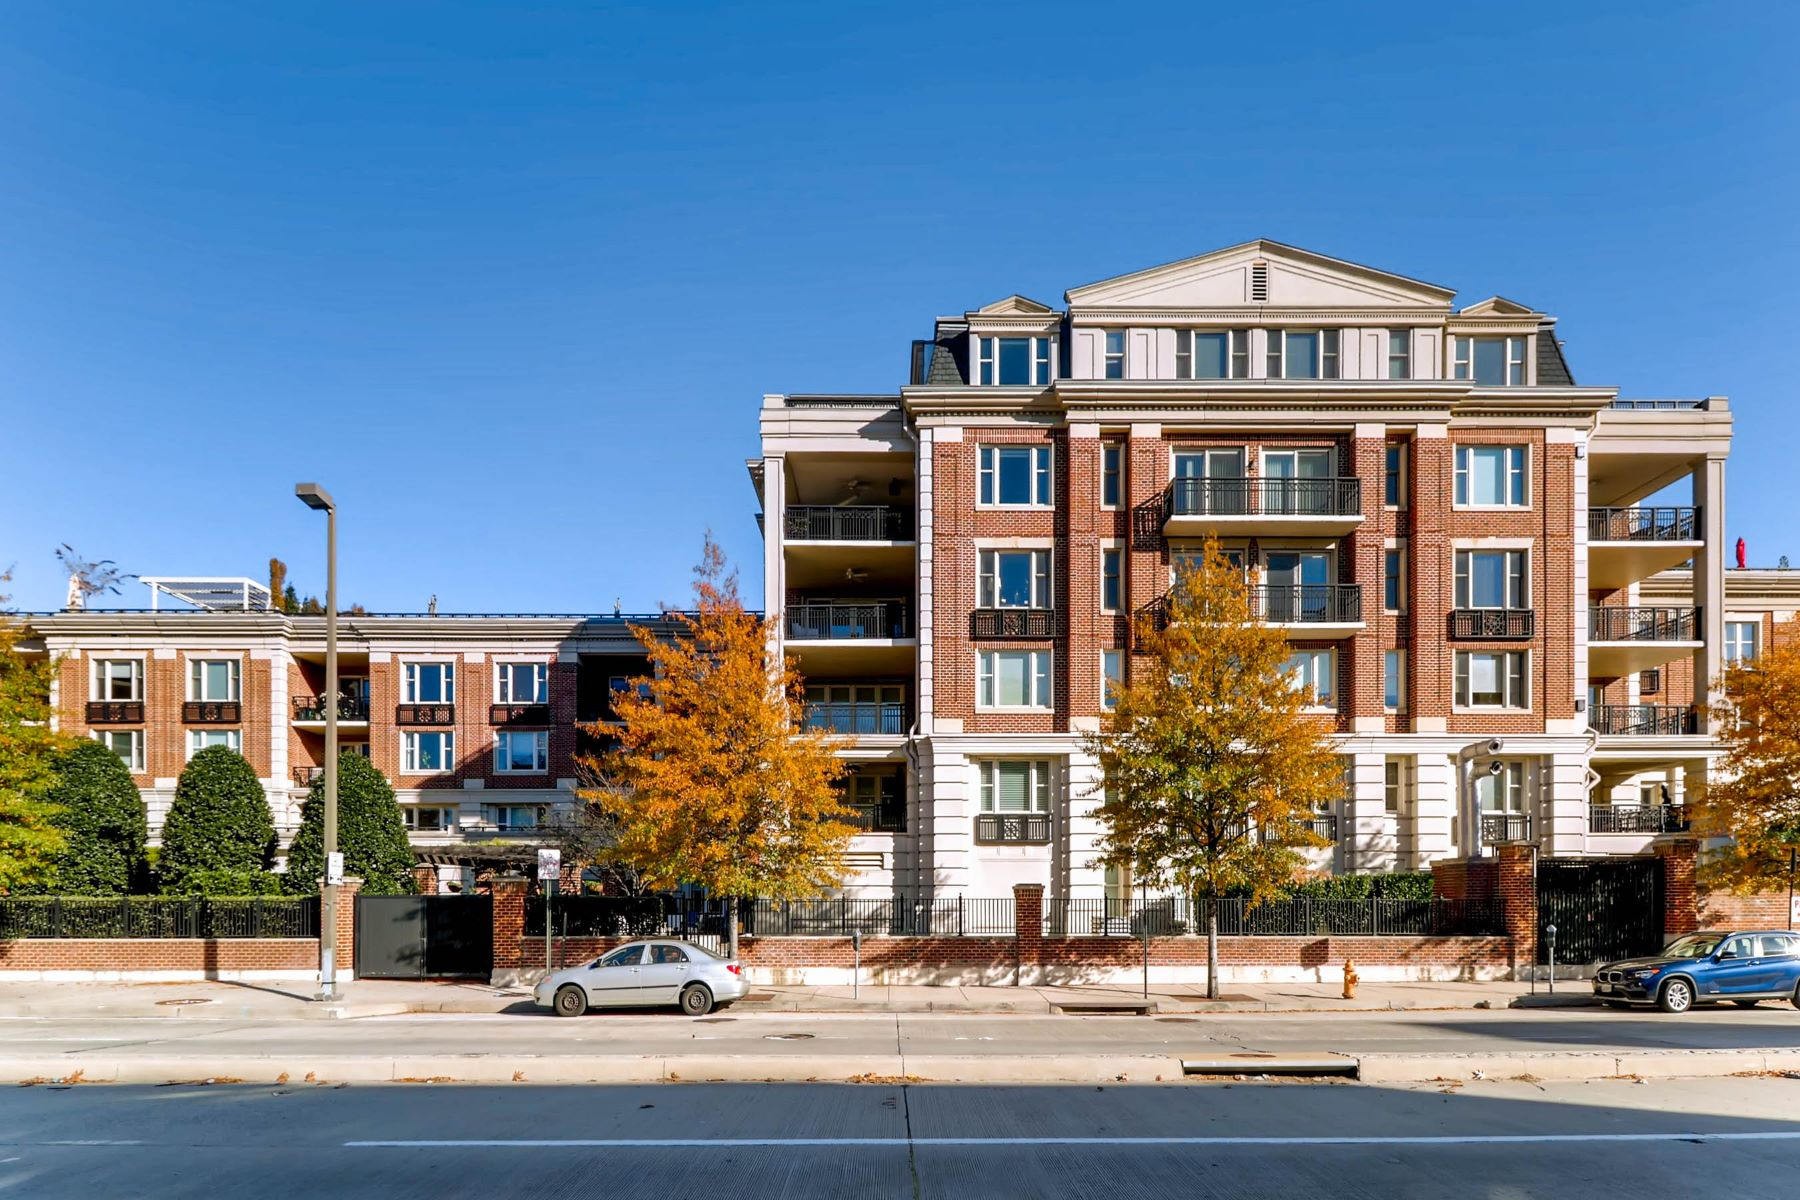 Condominium for Rent at The Ritz-Carlton Residences 801 Key Highway #P-50 Baltimore, Maryland 21230 United States